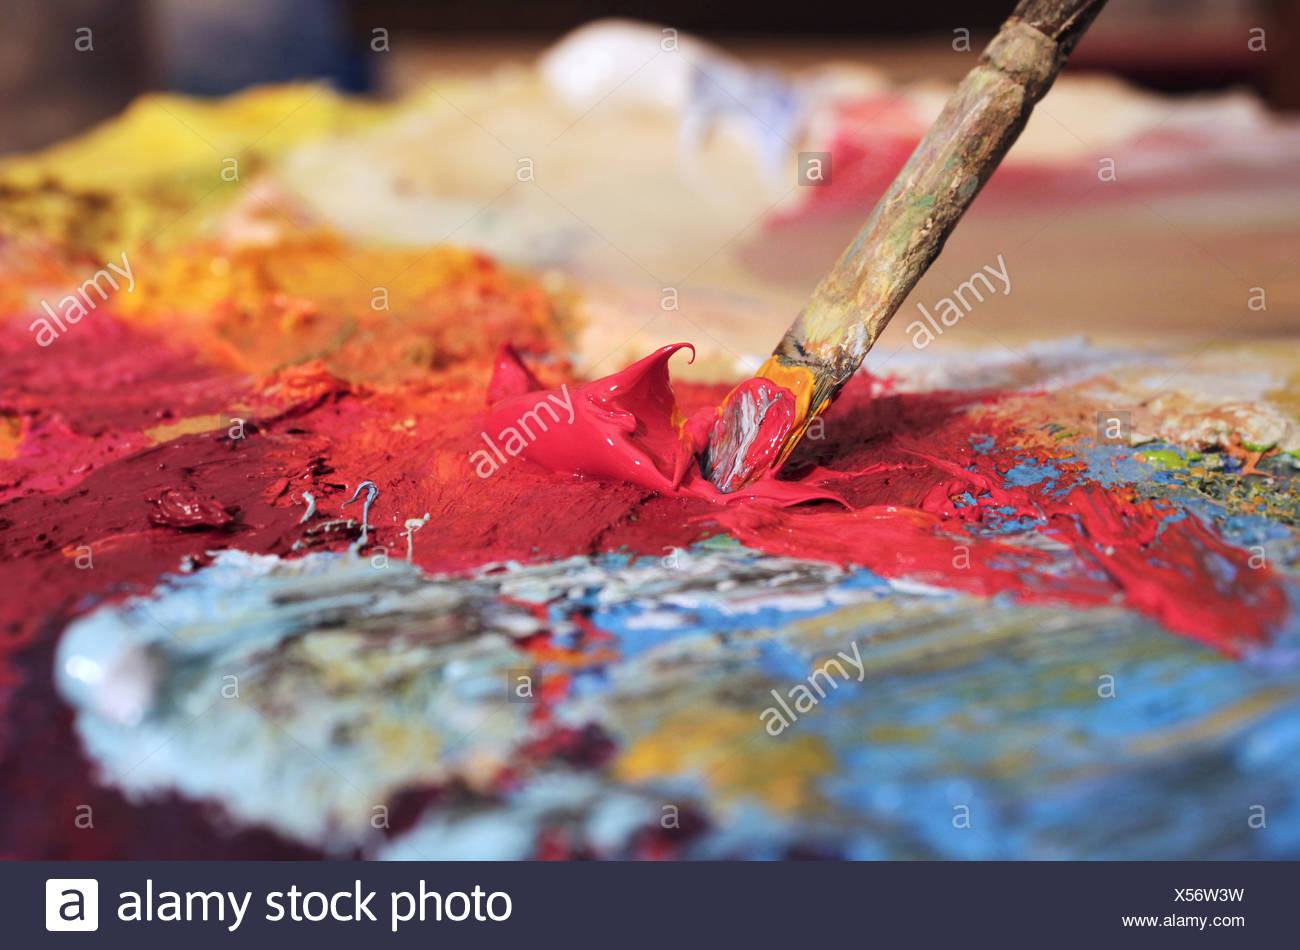 mixing colours - Stock Image